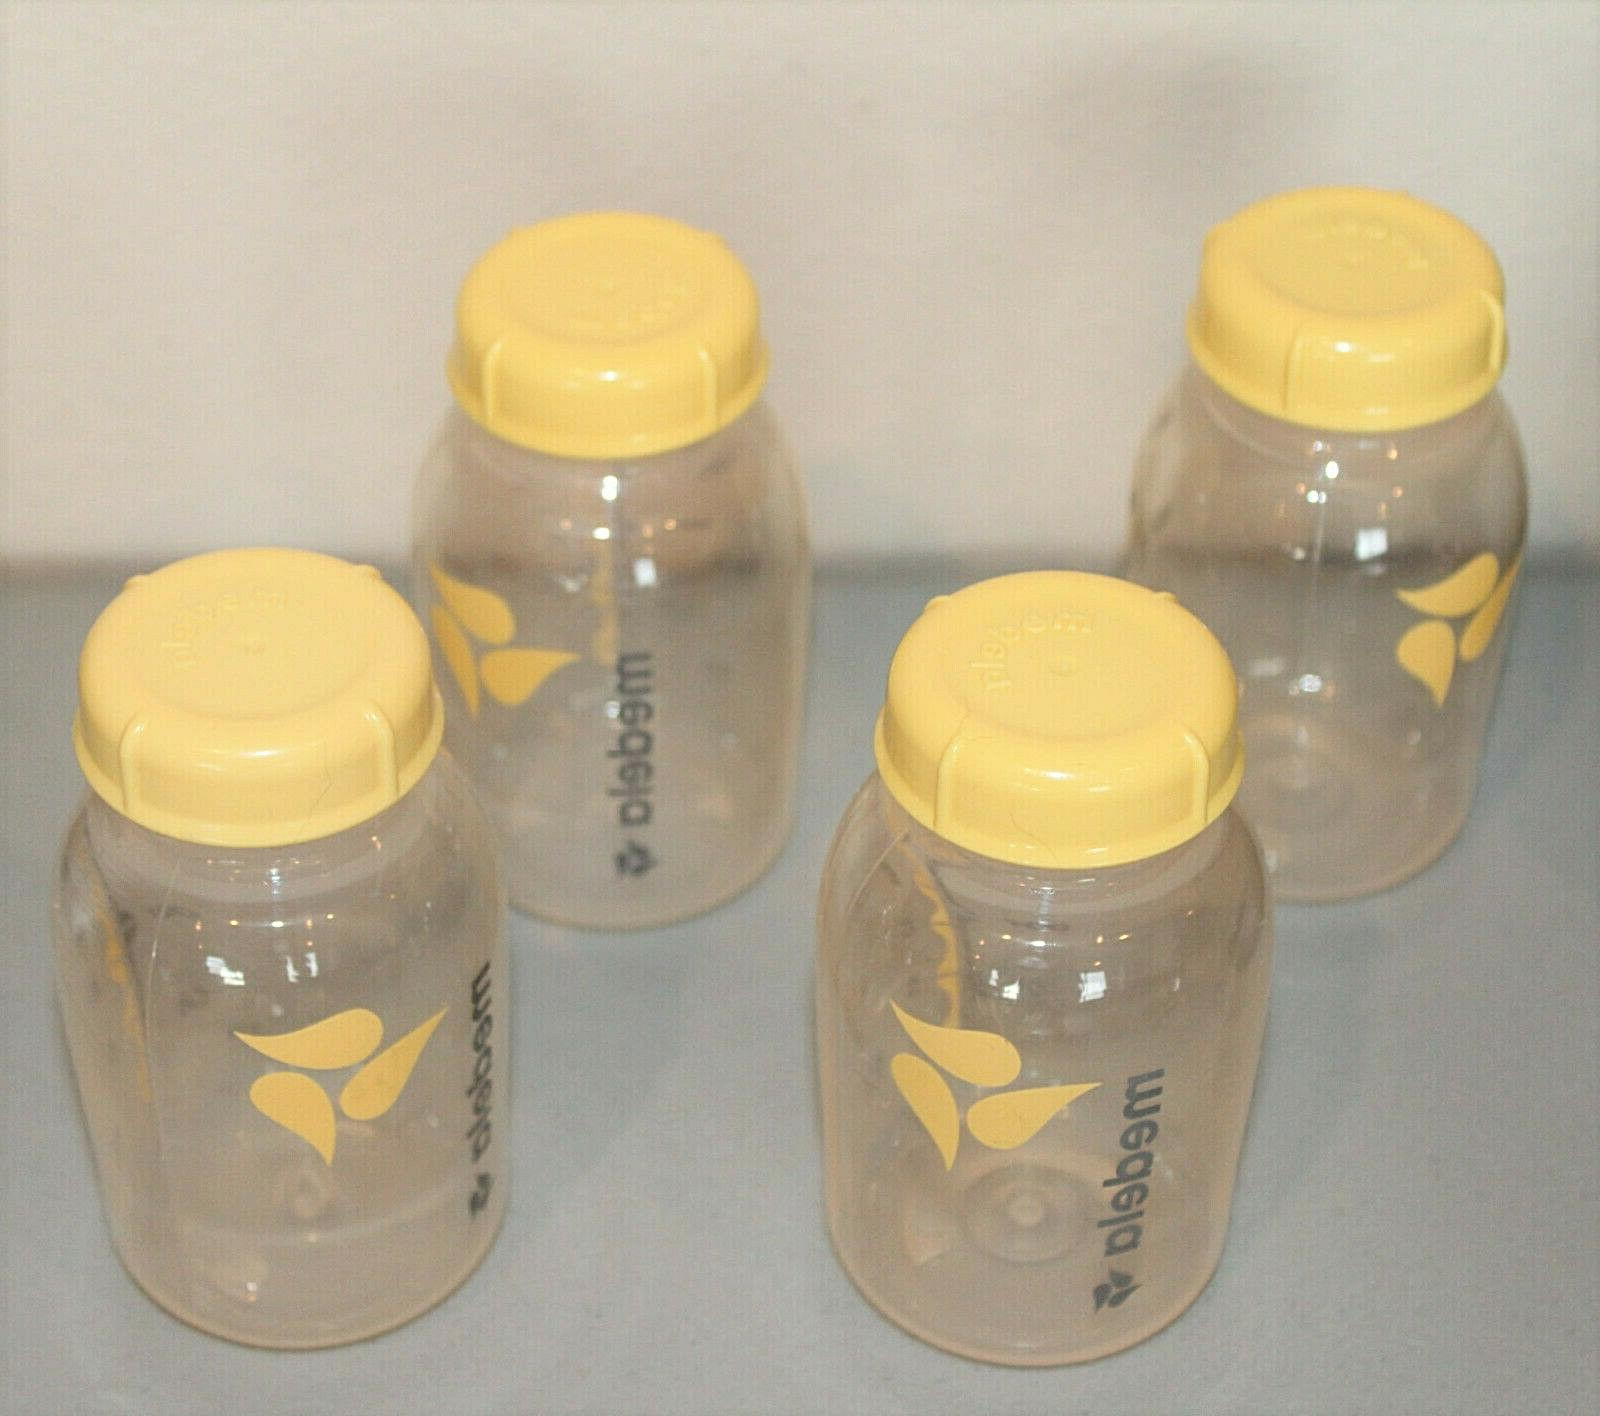 Medela Electric Breast Pump ACCESSORY